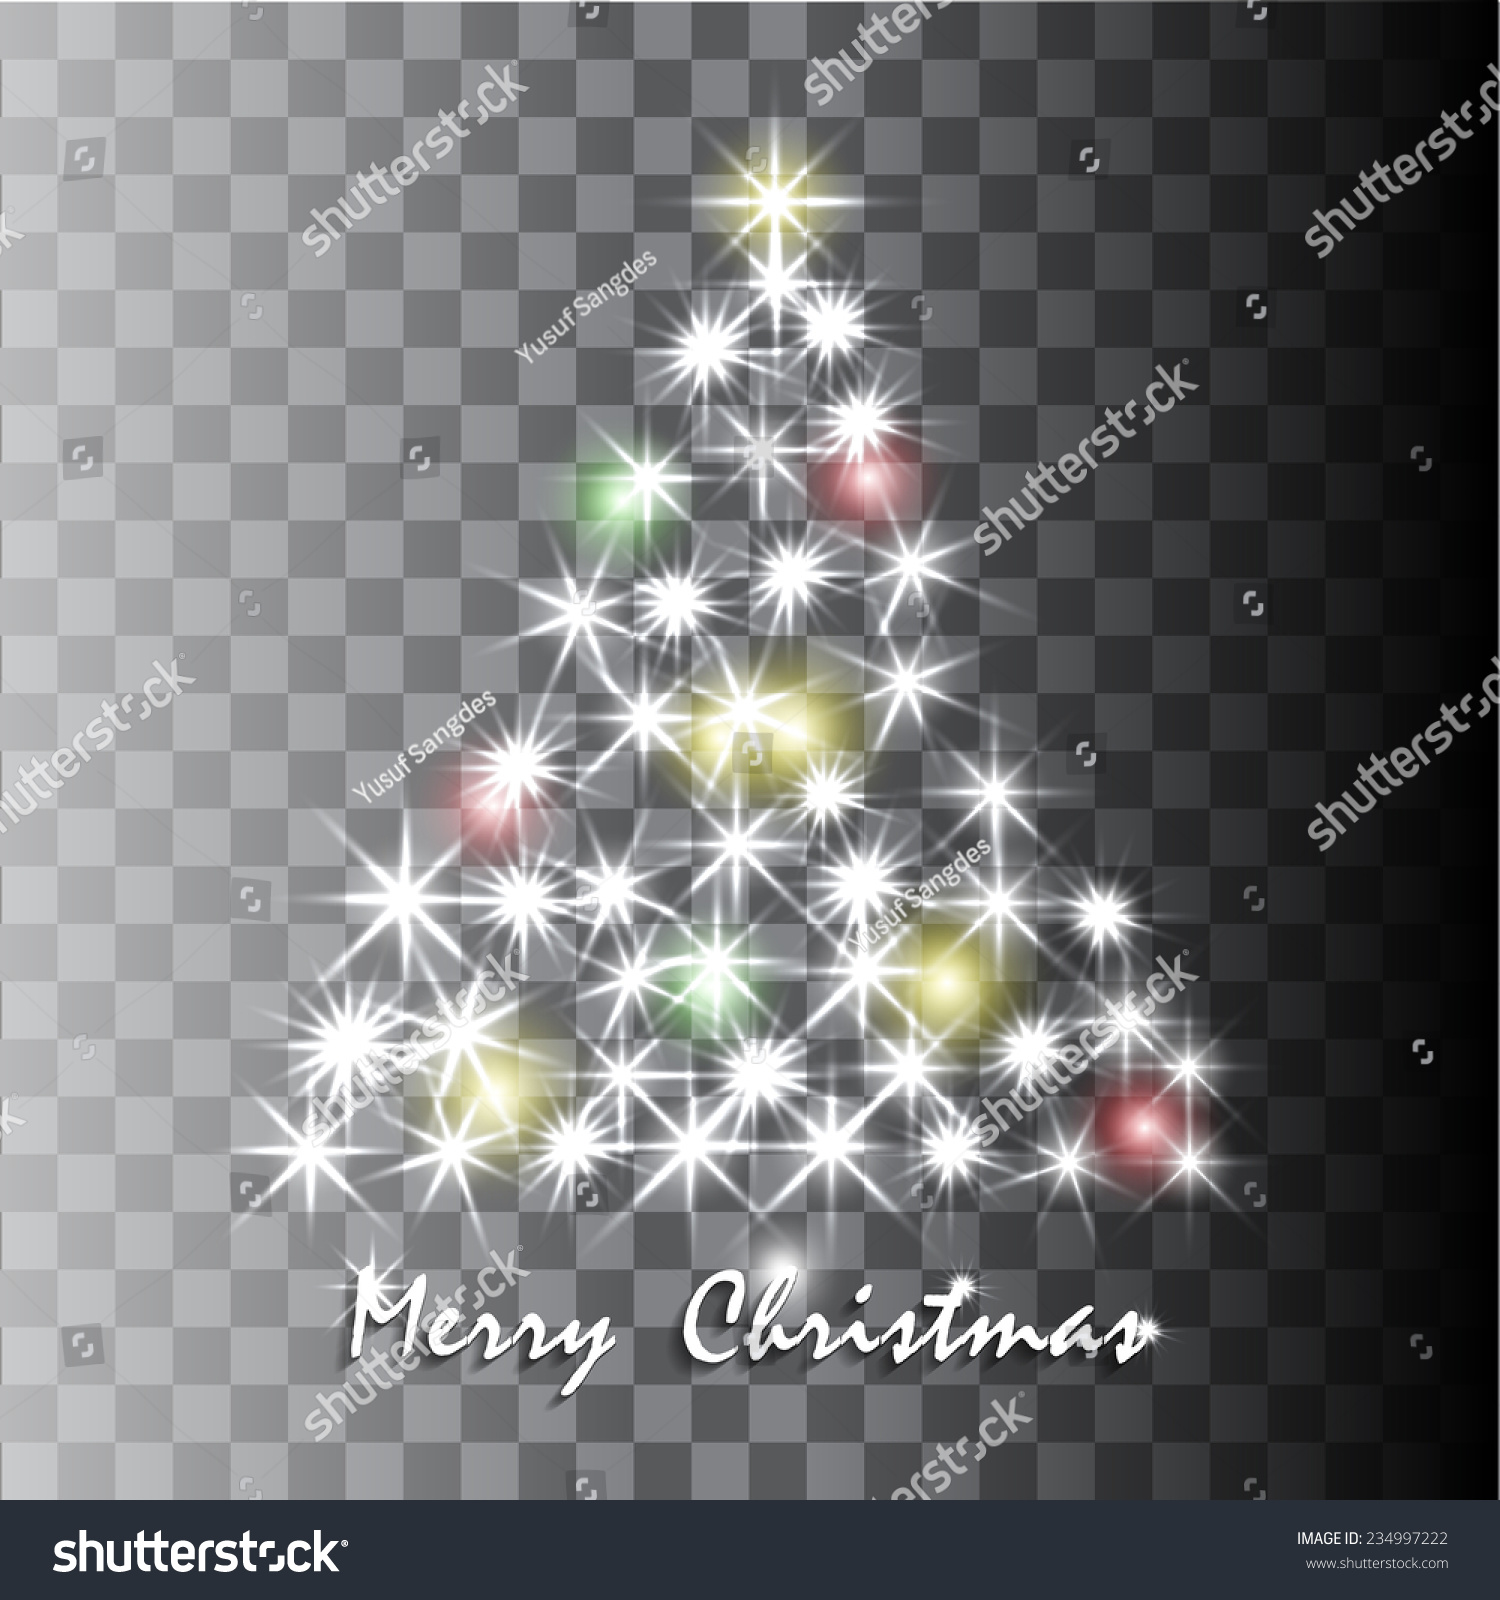 shining christmas tree in transparent background vector illustration - Christmas Tree Transparent